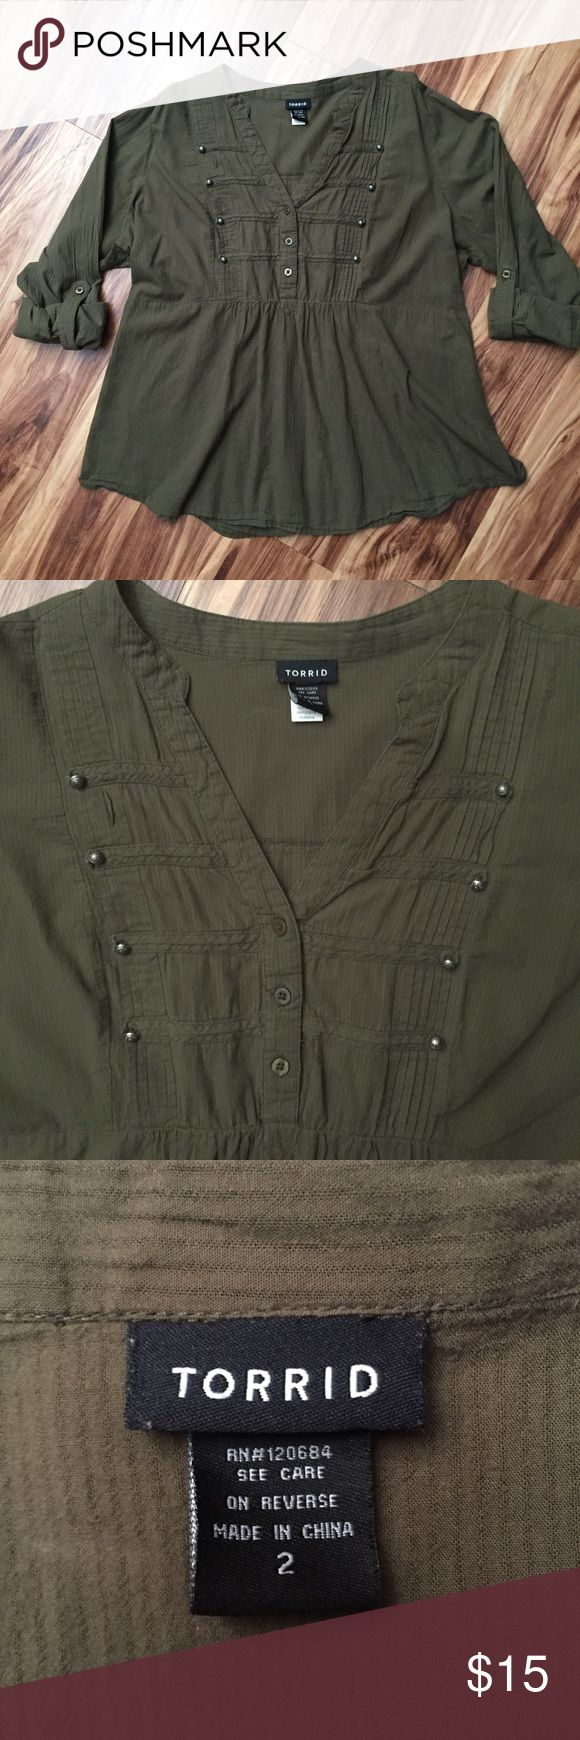 Torrid Army Green Baby Doll 3/4 Button Top 2 XXL EUC Torrid top in a deep army green color. It is a size 2 (18/20) The sleeves roll up with a button closure and are full length when unrolled. The scrunched elastic back detail creates a flared out baby doll look, which is quite flattering! This too would be great with leggings and cute boots in the fall and shorts and gladiator sandals in the summer! Either way, this top is super on trend right now!  Keywords: military, army, green, khaki…